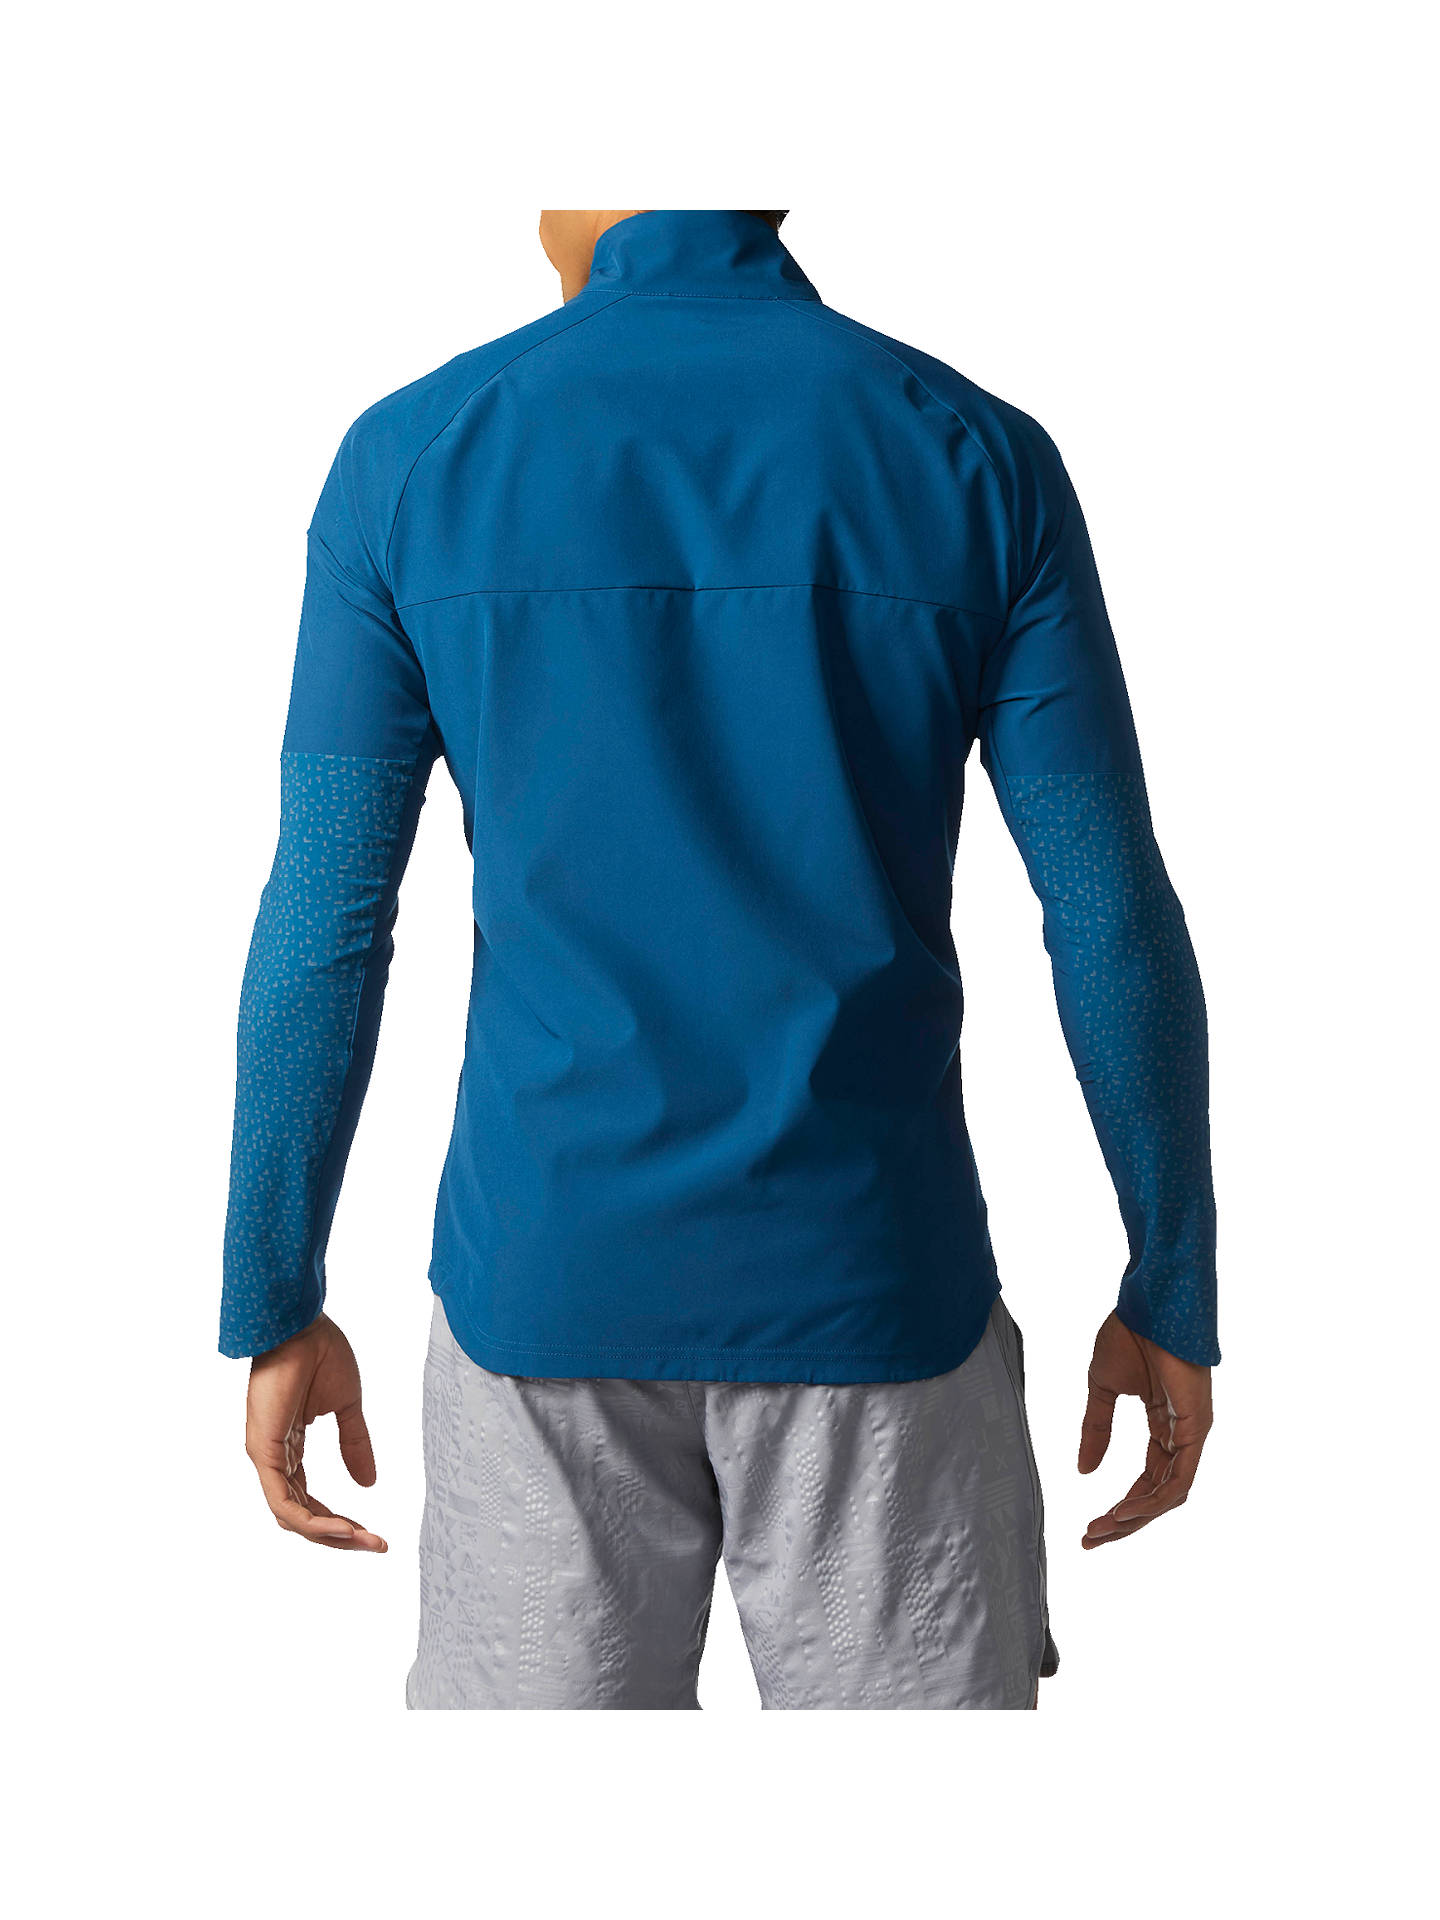 Sport Adidas Men's Supernova Storm Sweat Shirt Running